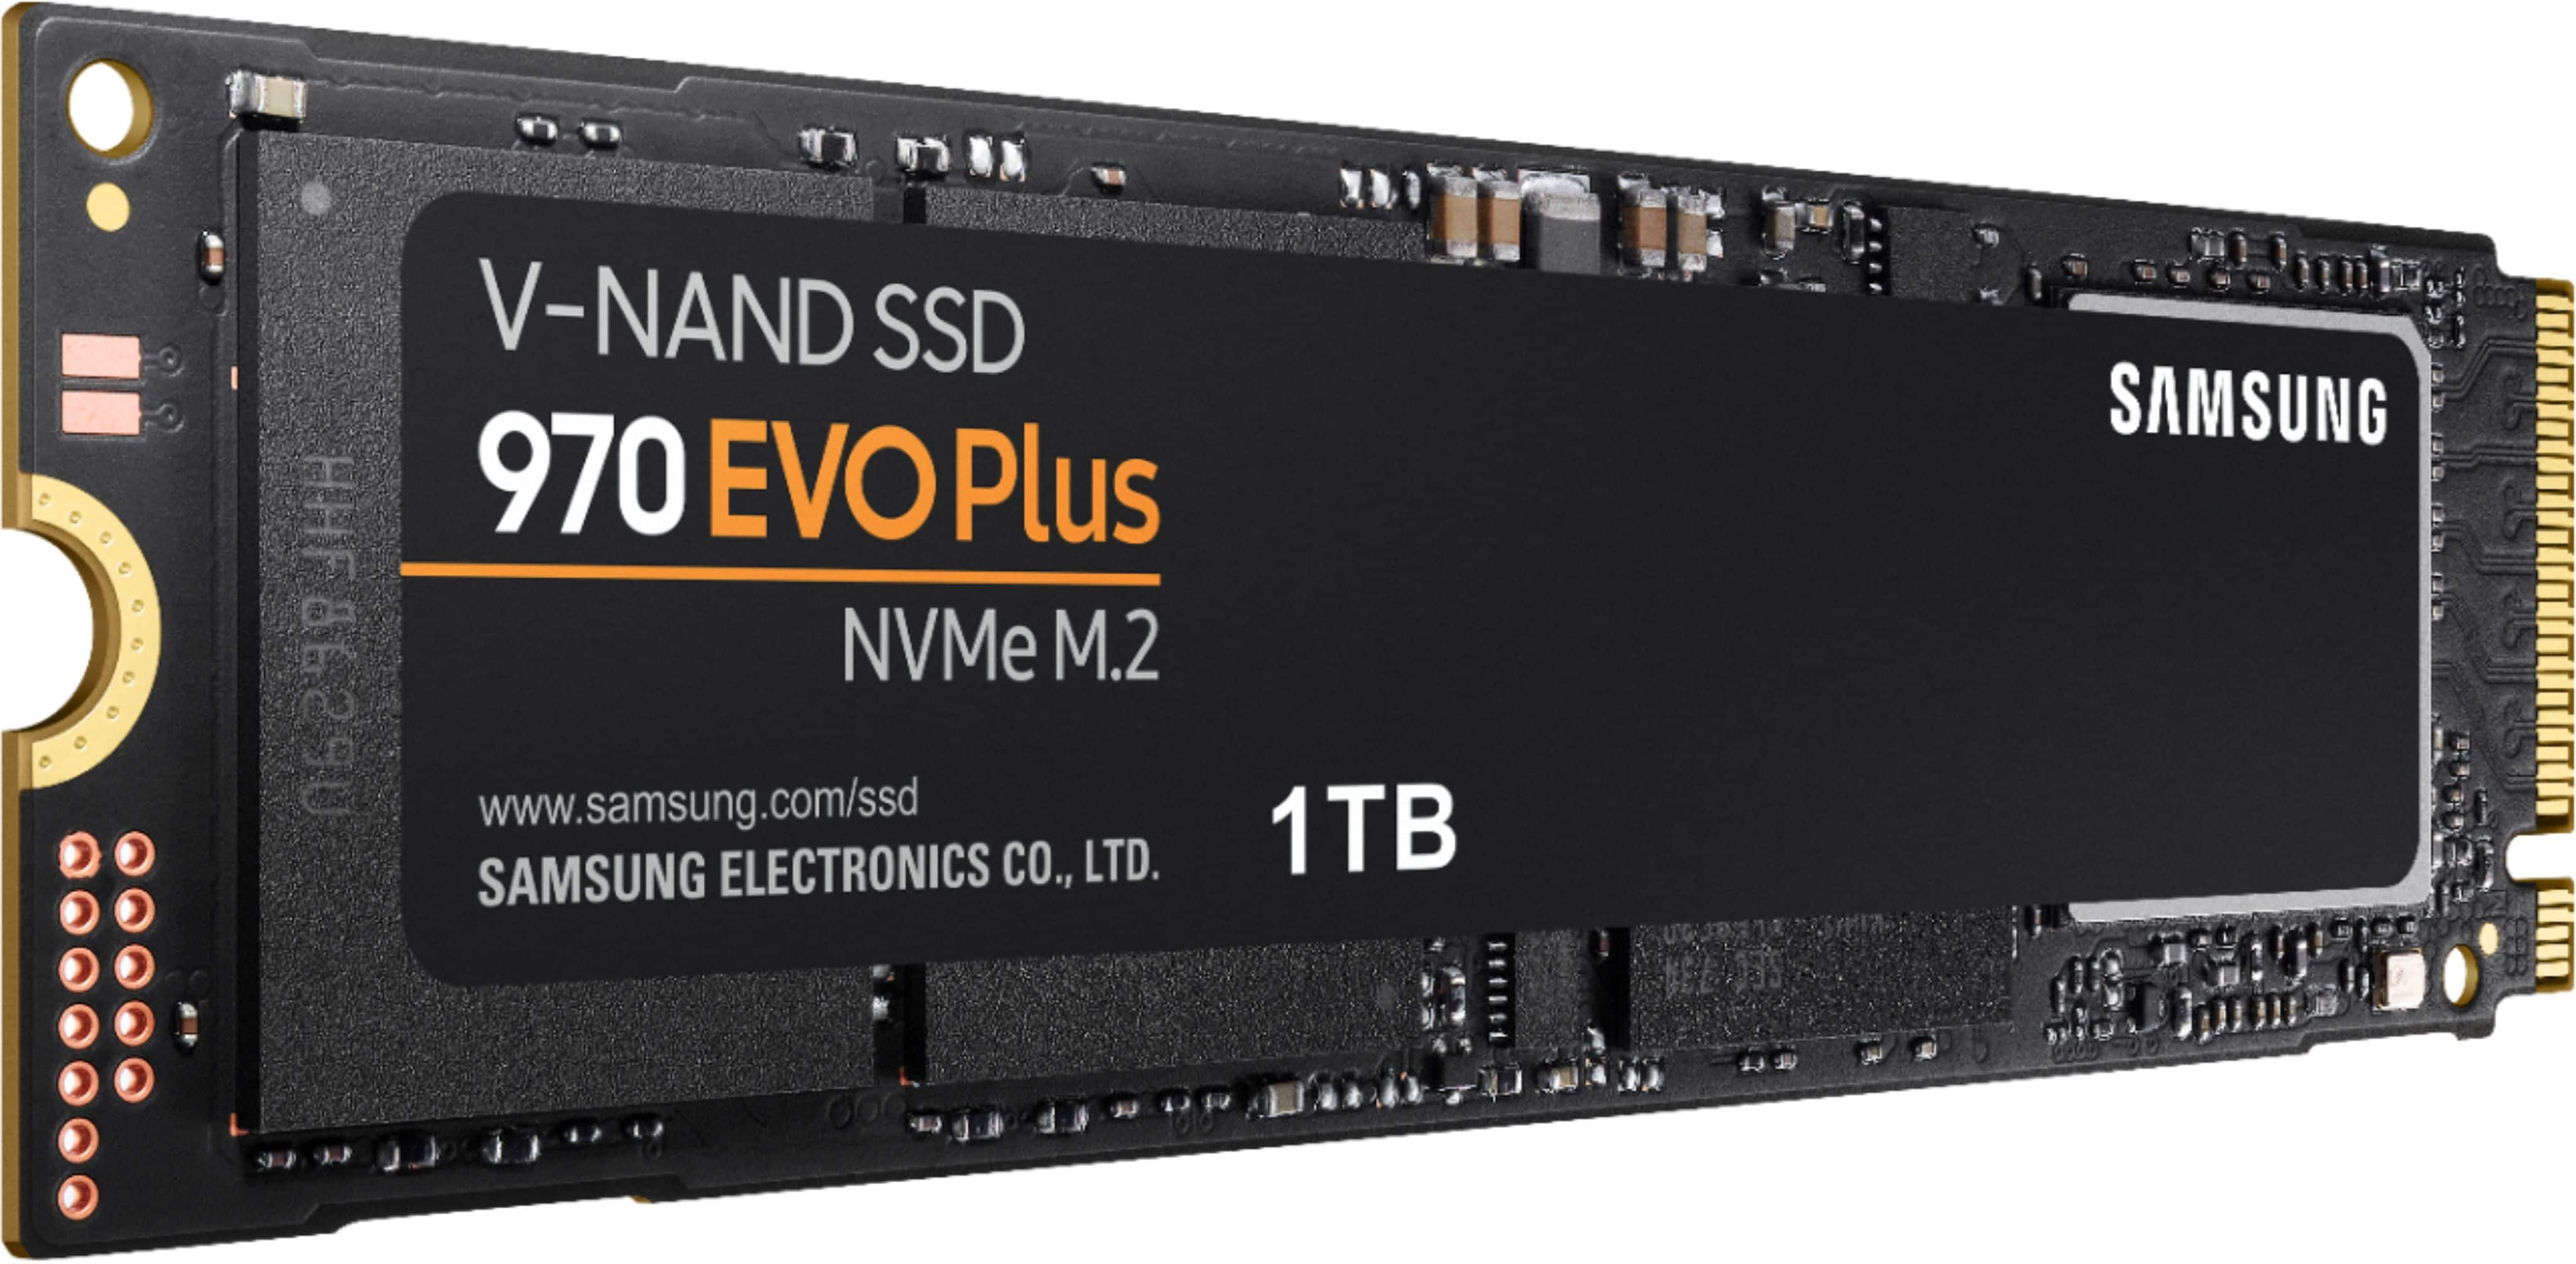 500GB Samsung - 970 EVO Plus NVMe SSD @BestBuy/ Amazon $100